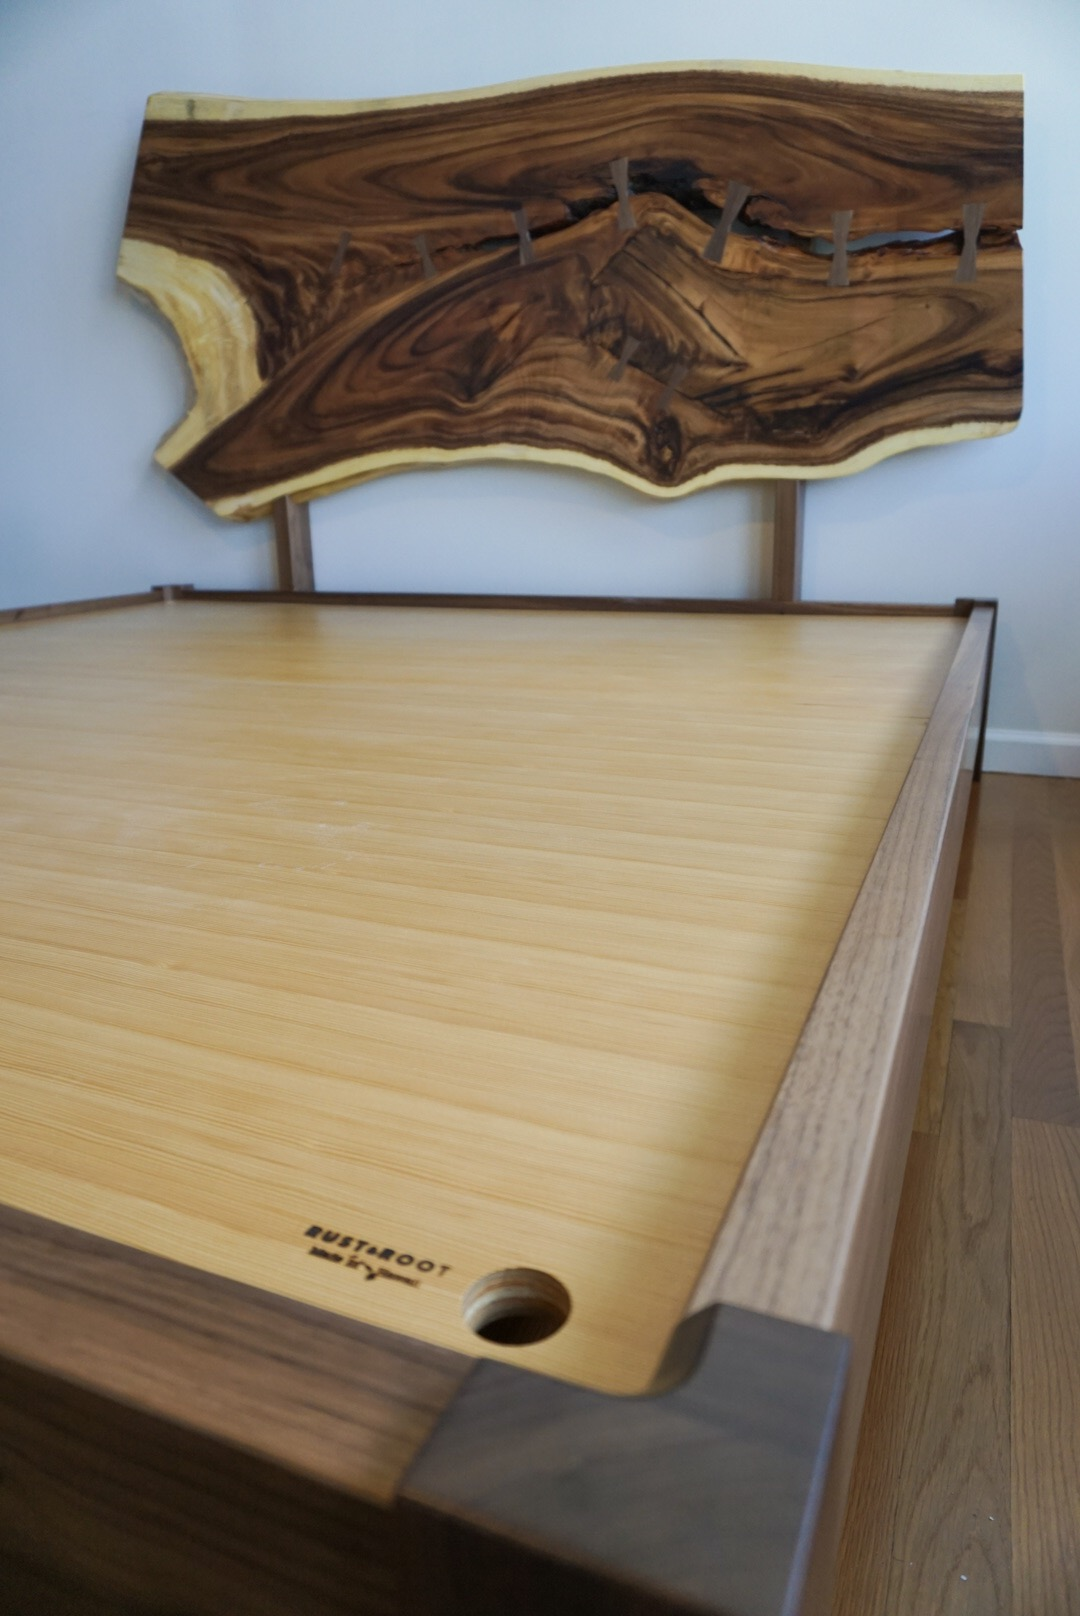 Walnut and monkeypod bed frame. Incredible Hawaiian monkeypod slab with plenty of walnut dutchmen holding it together.